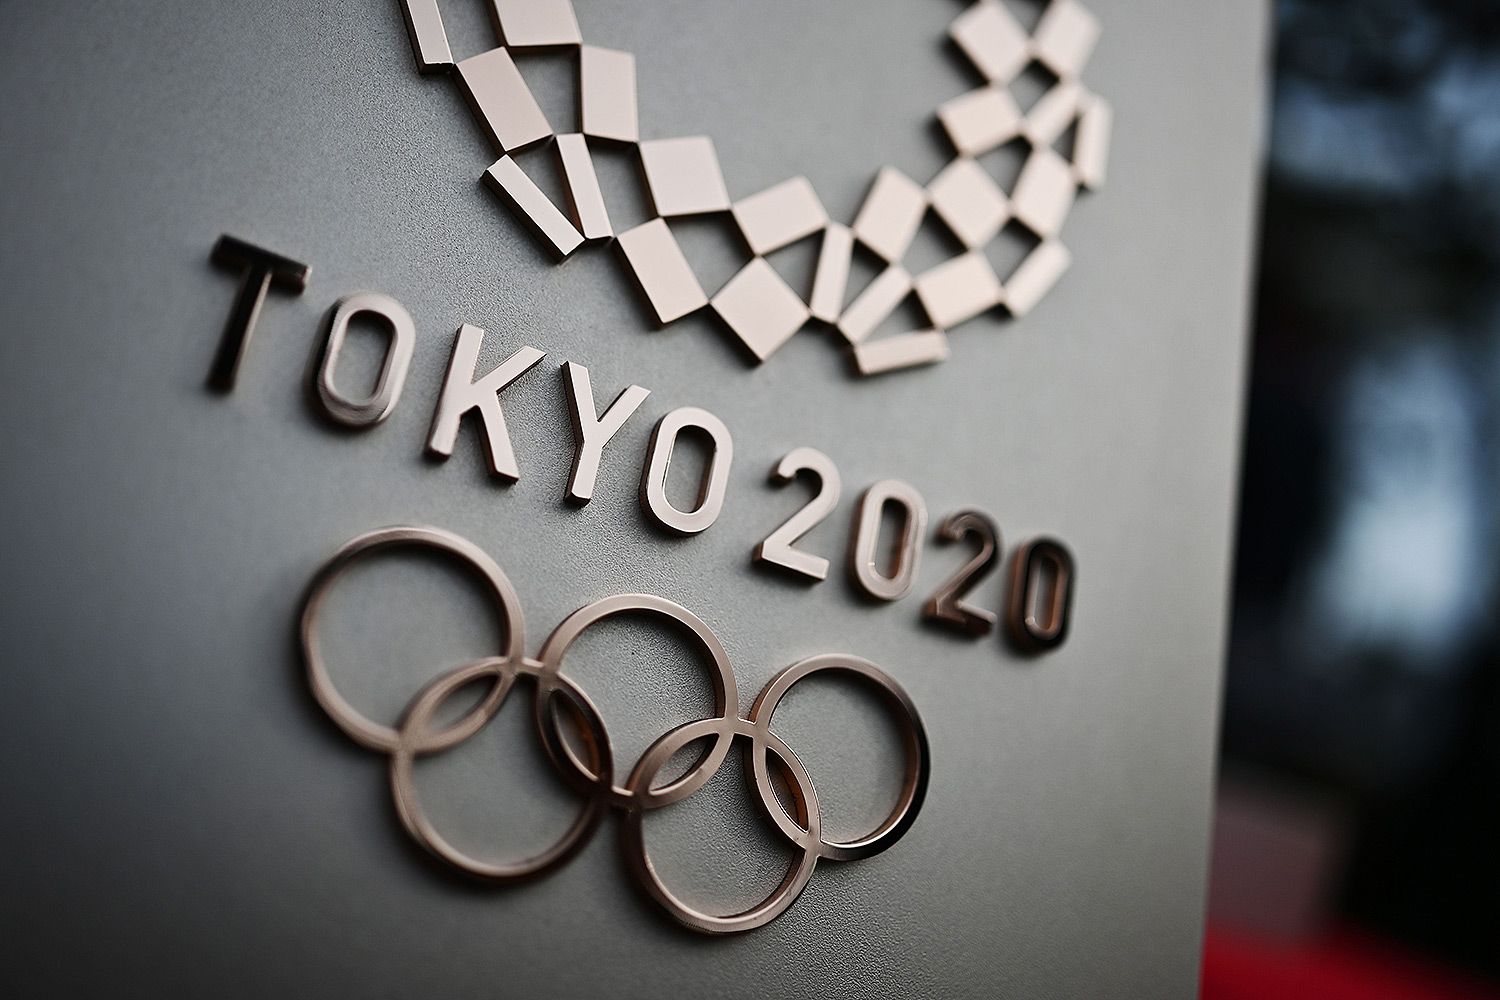 Olympic Official Says 2020 Olympics Could Still Be Postponed 1 to 2 Years If Needed